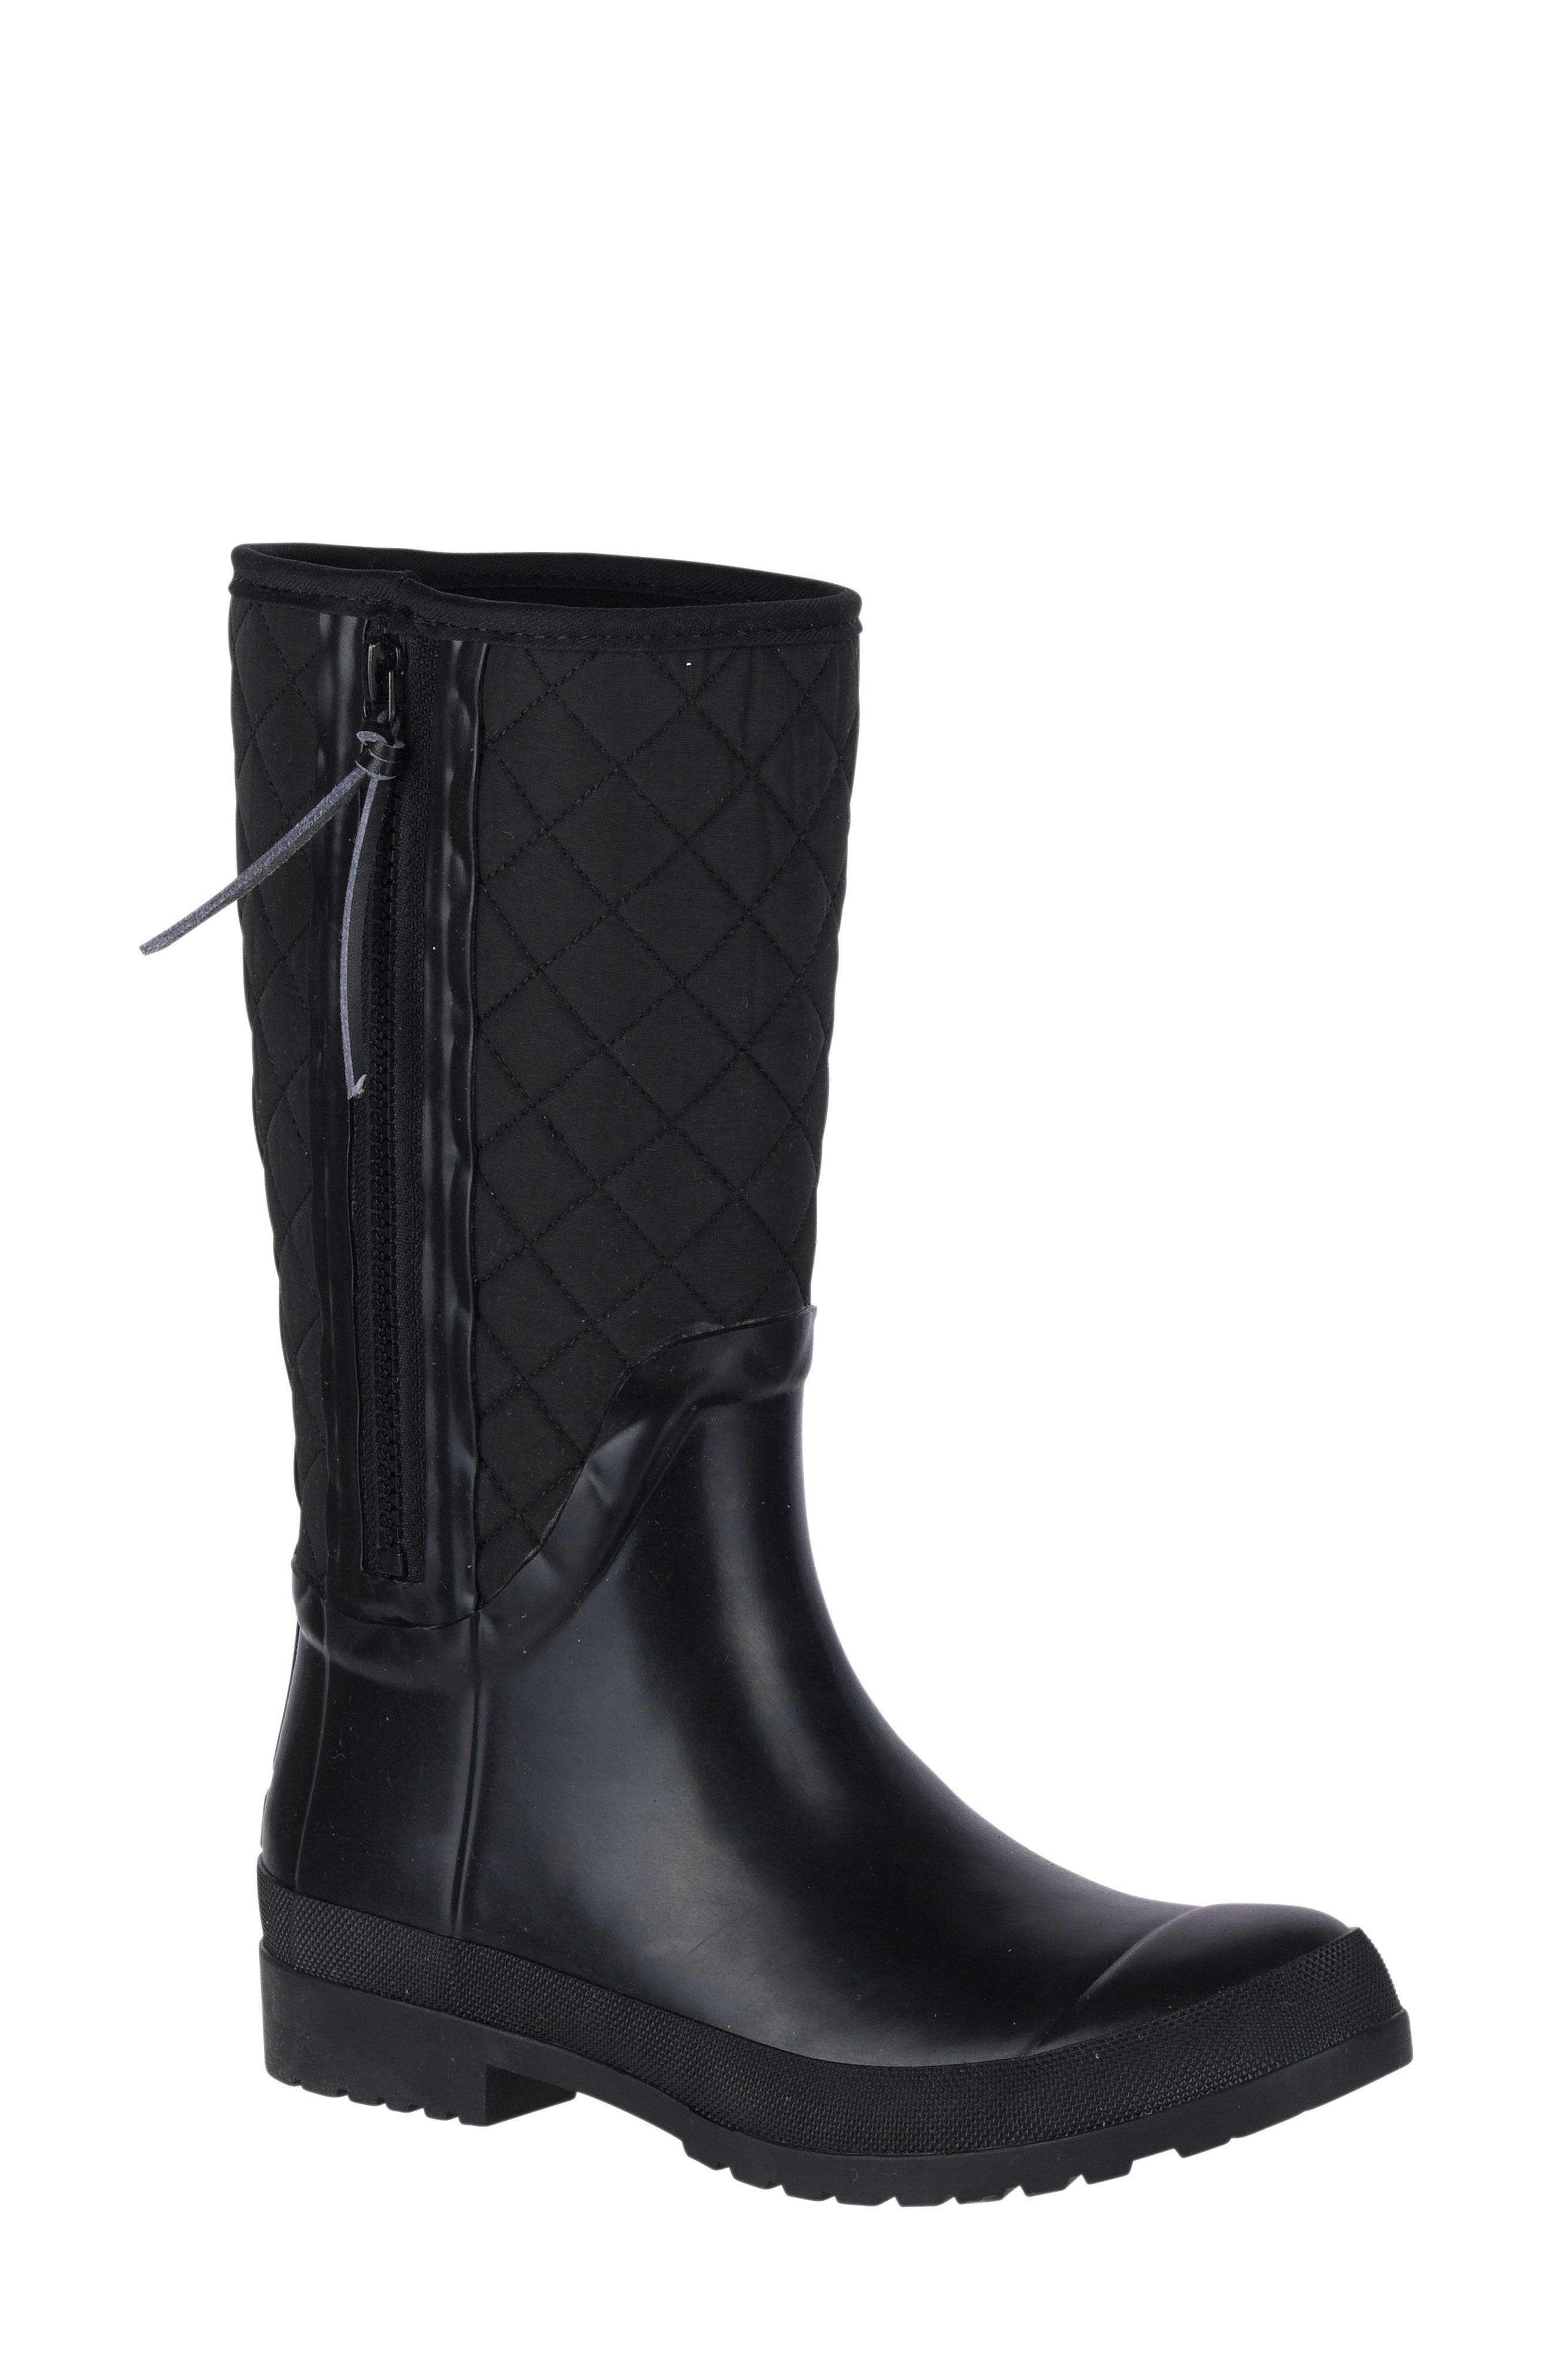 Walker Quilted Rain Boot,                             Main thumbnail 1, color,                             001